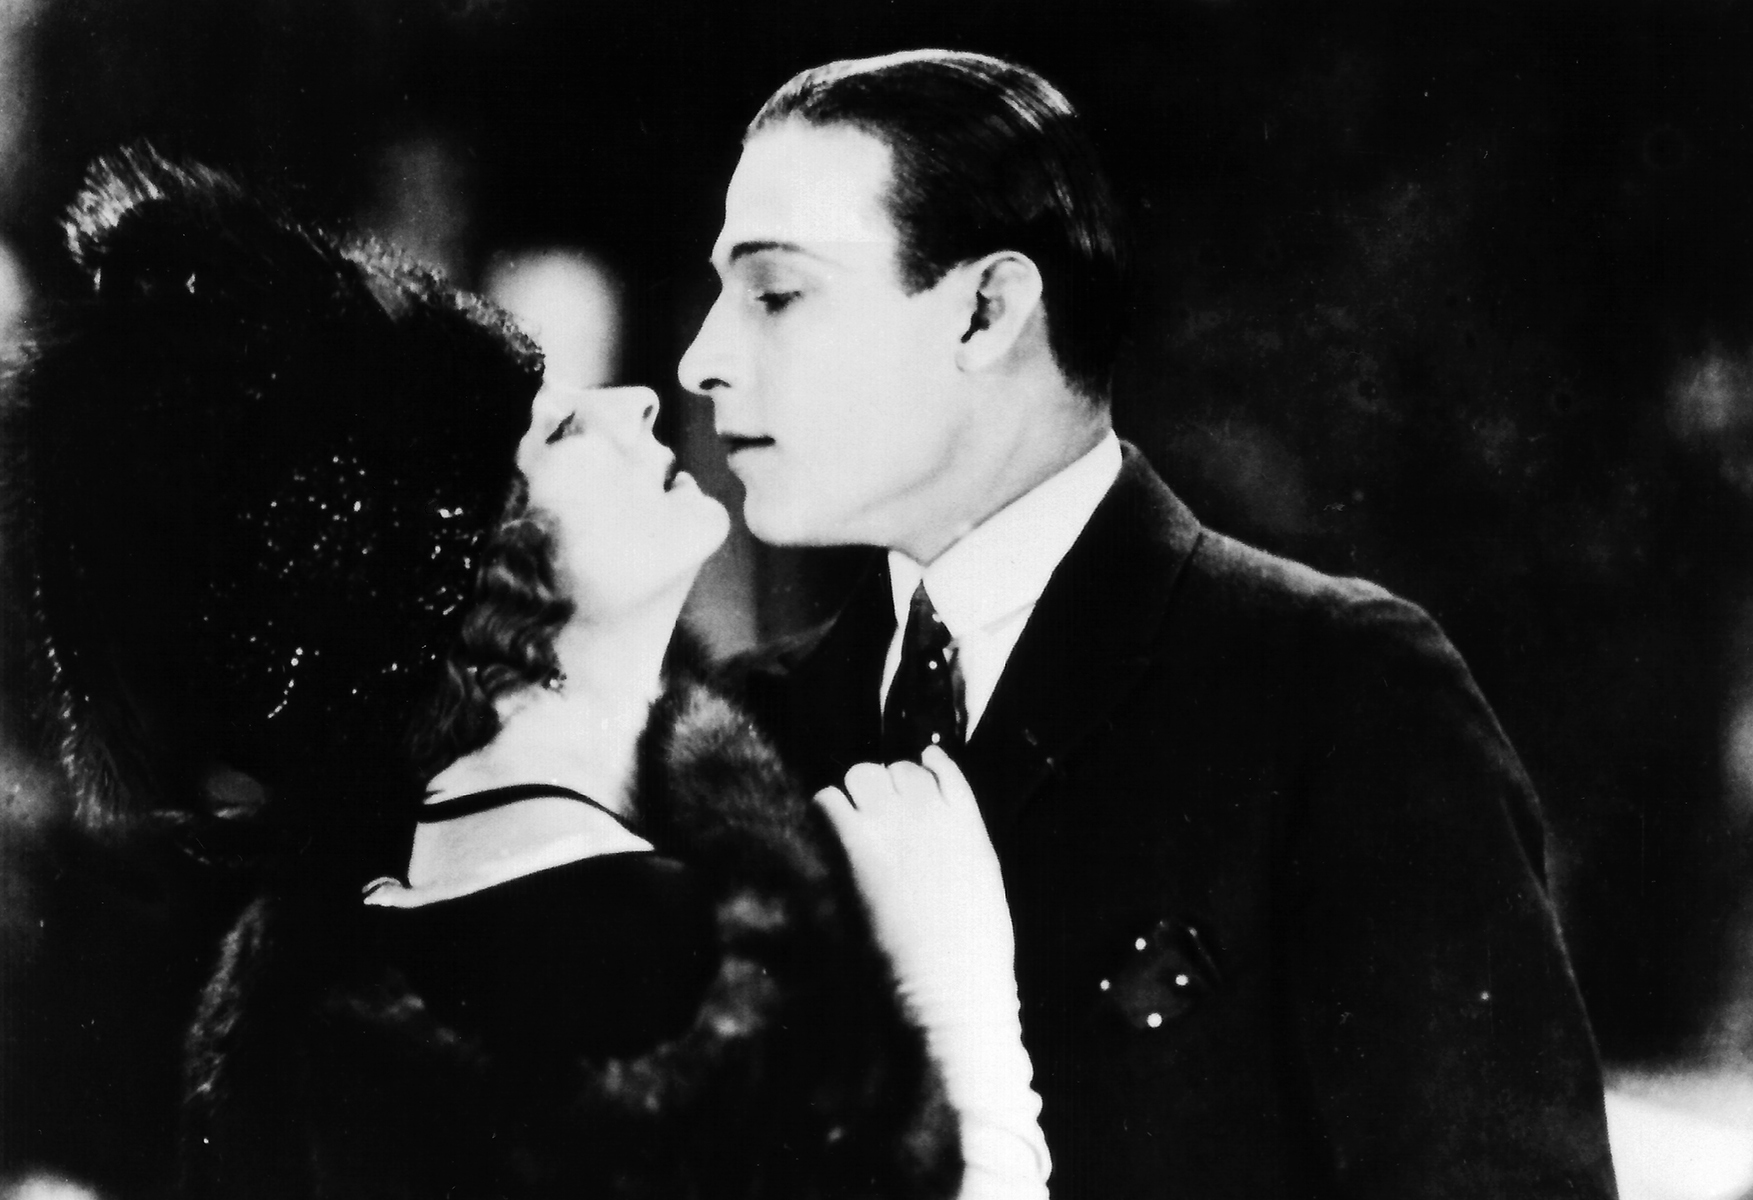 San Francisco Silent Film Festival Welcomes Back a Bygone Era